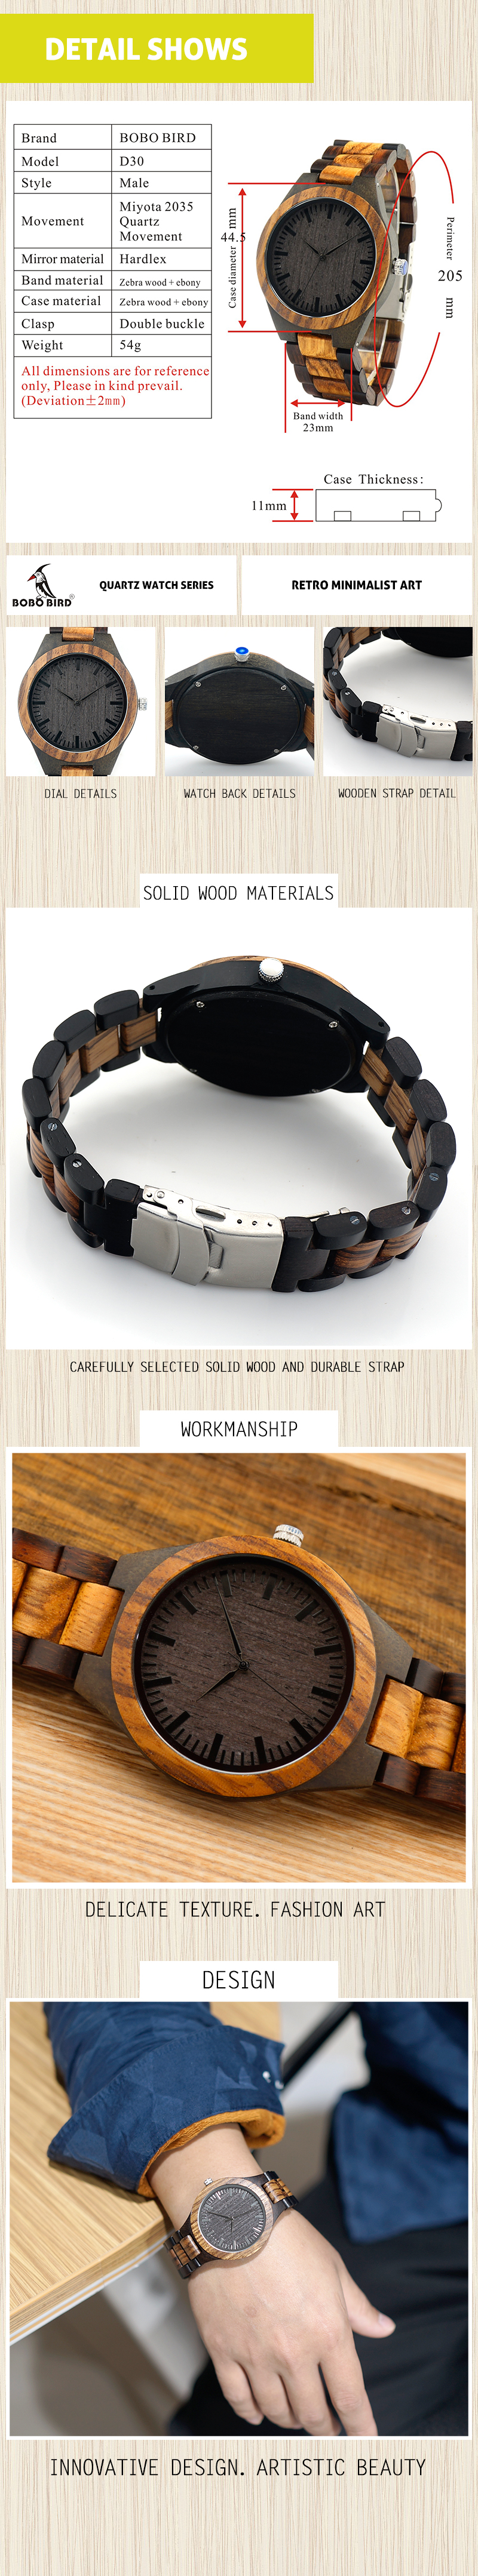 WOODEN WATCH D309